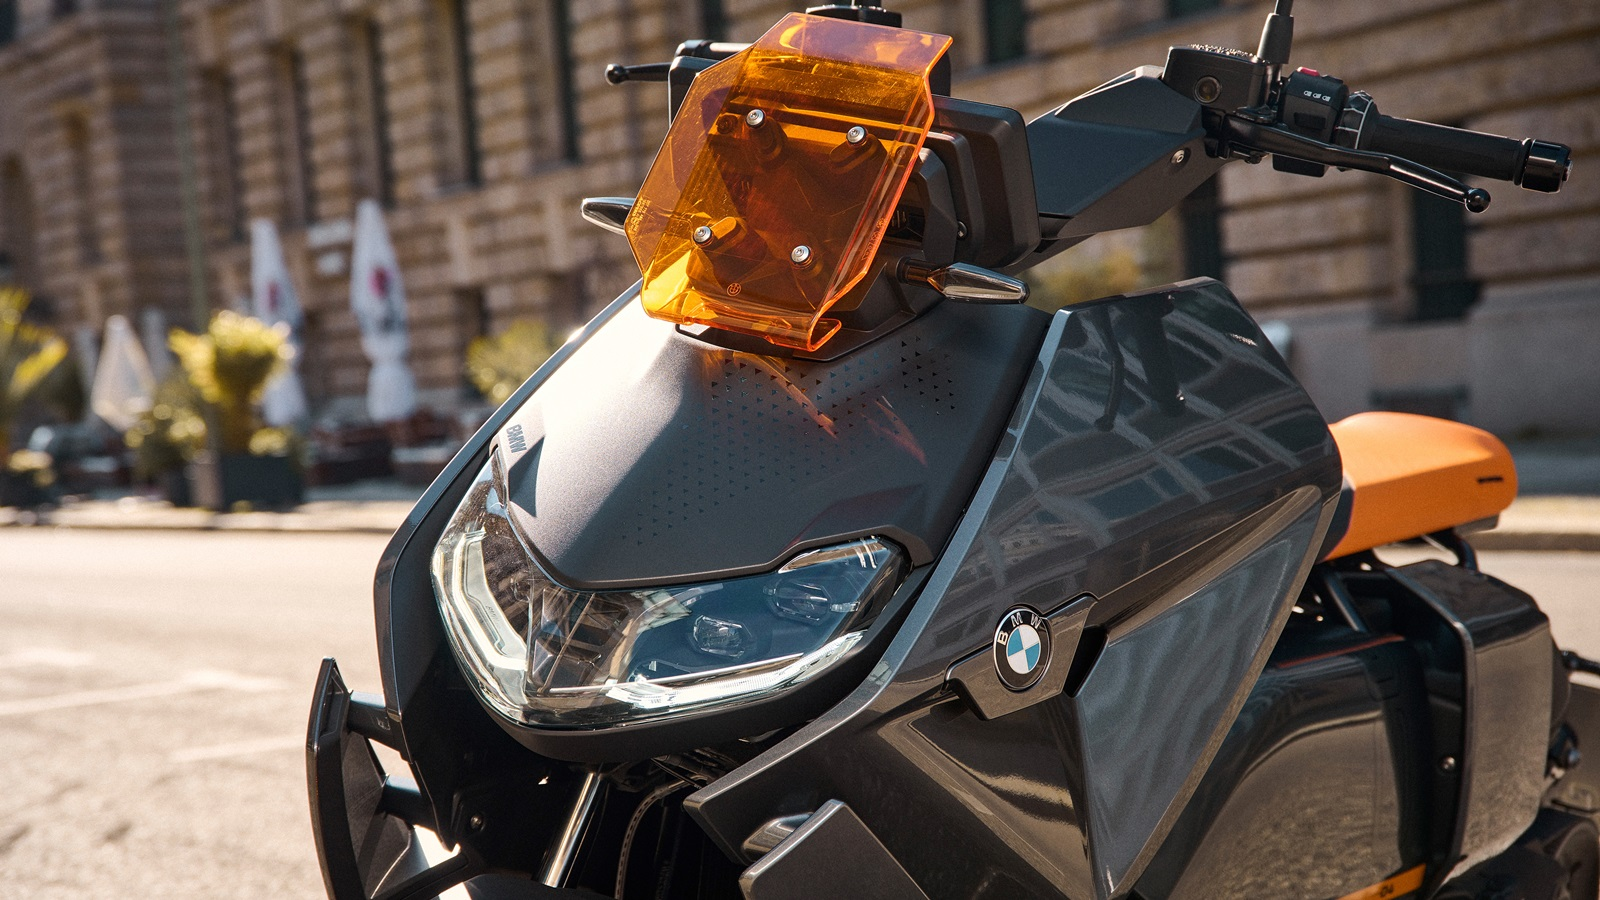 BMW CE 04 electric scooter headlight